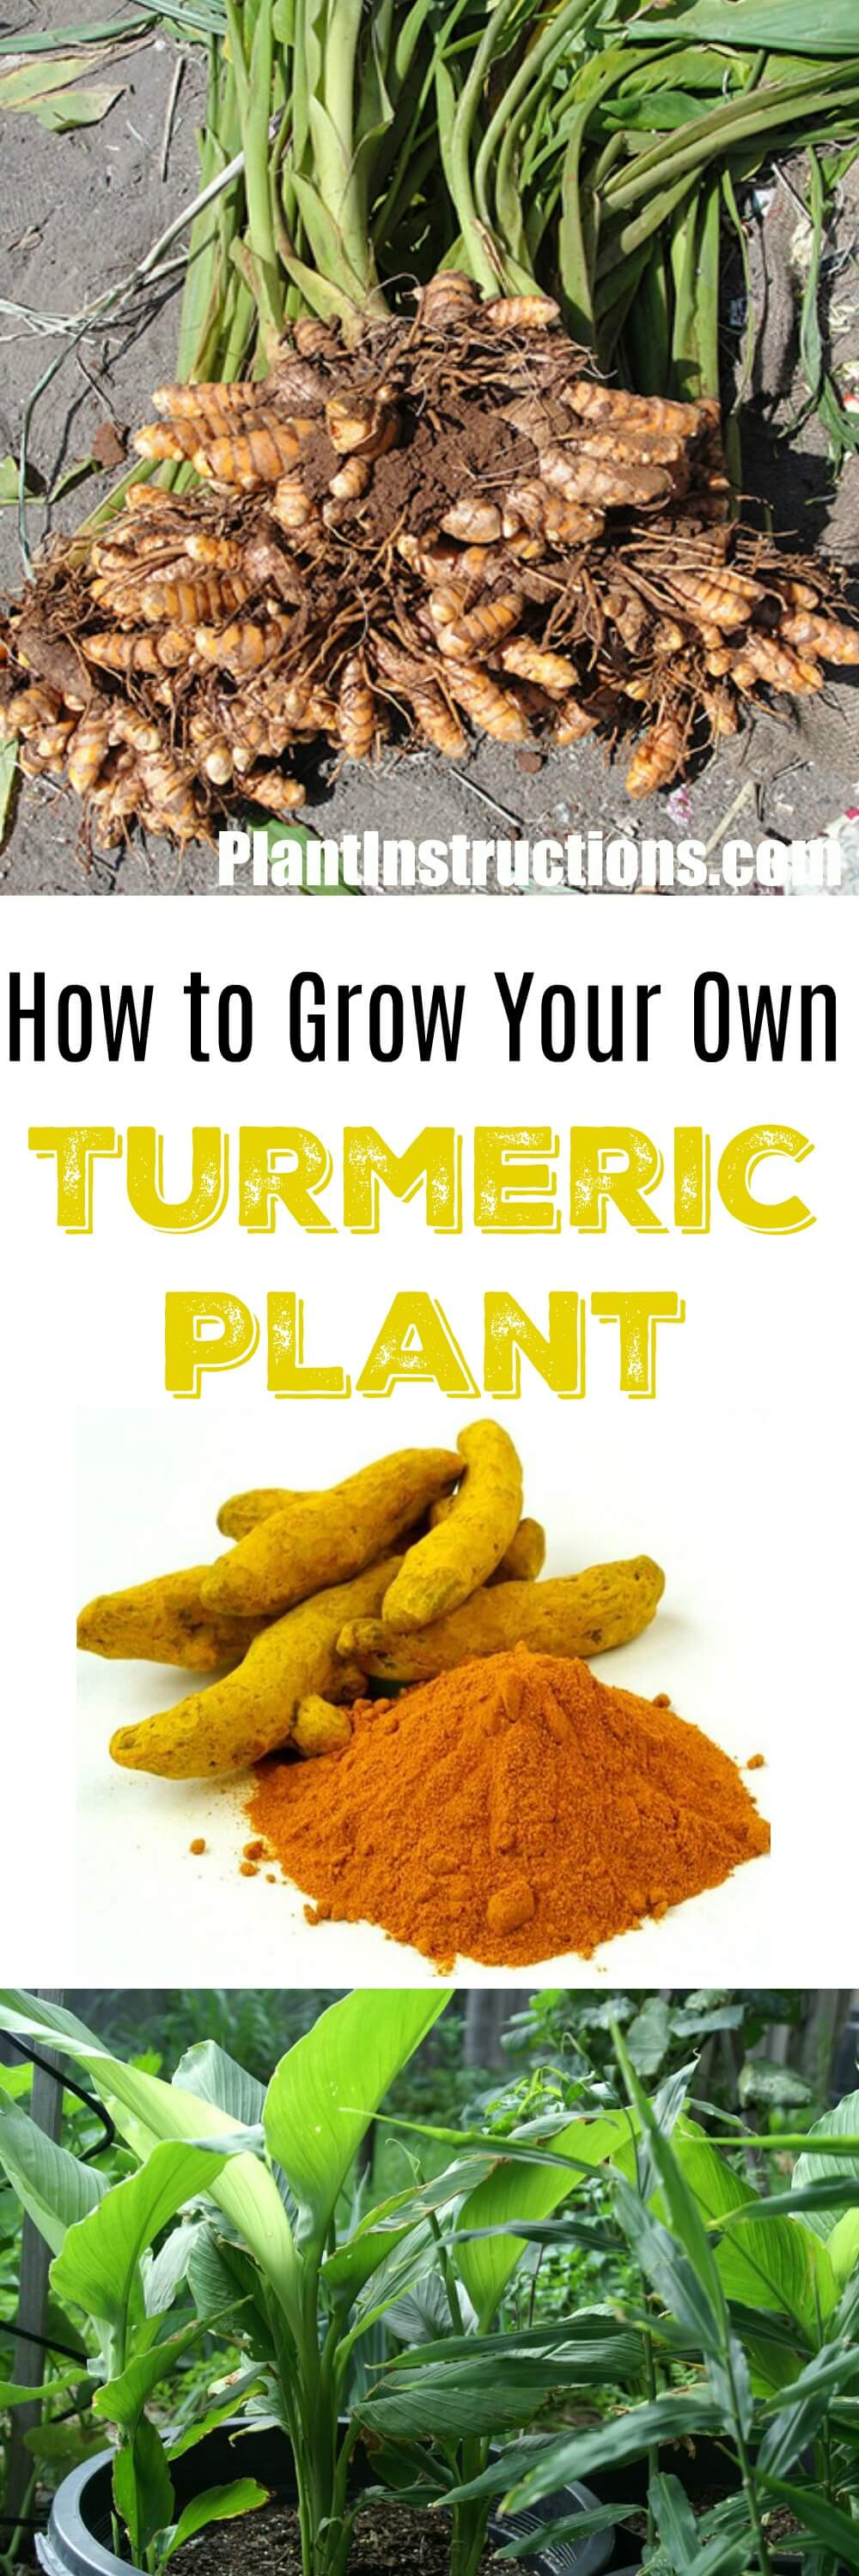 Did you know you can actually grow your own turmeric? Follow our easy gardening guide to learn how to grow turmeric in pots!